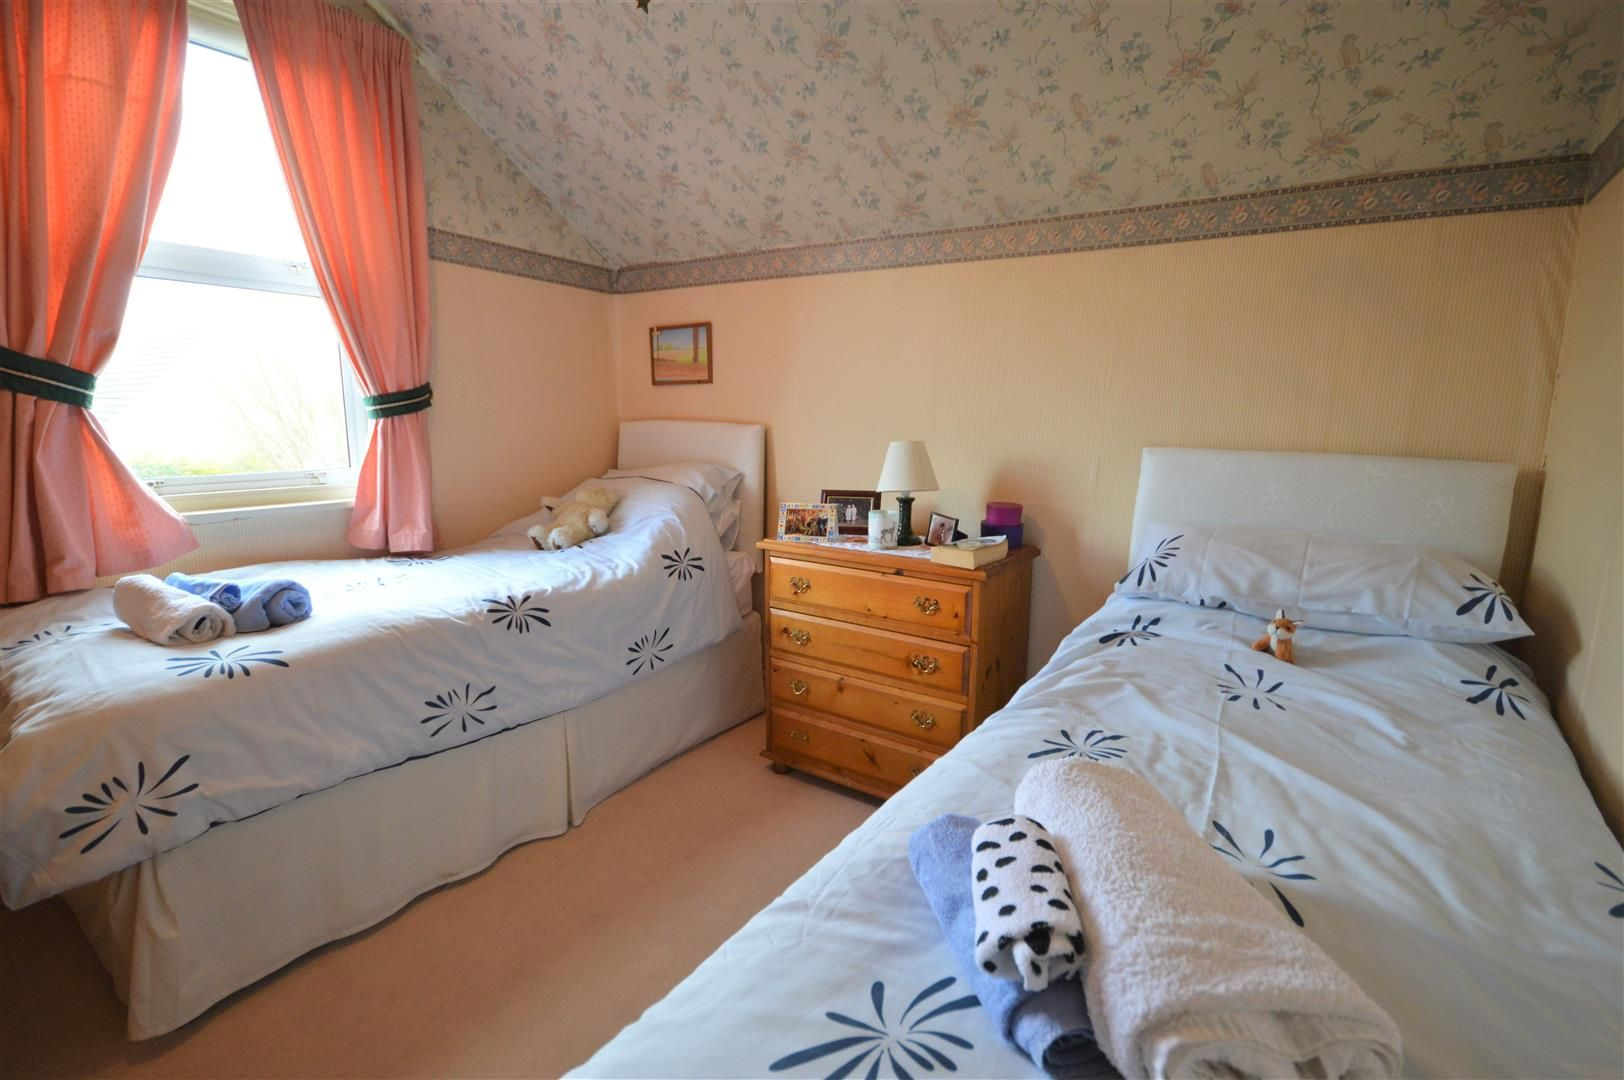 3 bed end of terrace for sale in Leominster 11